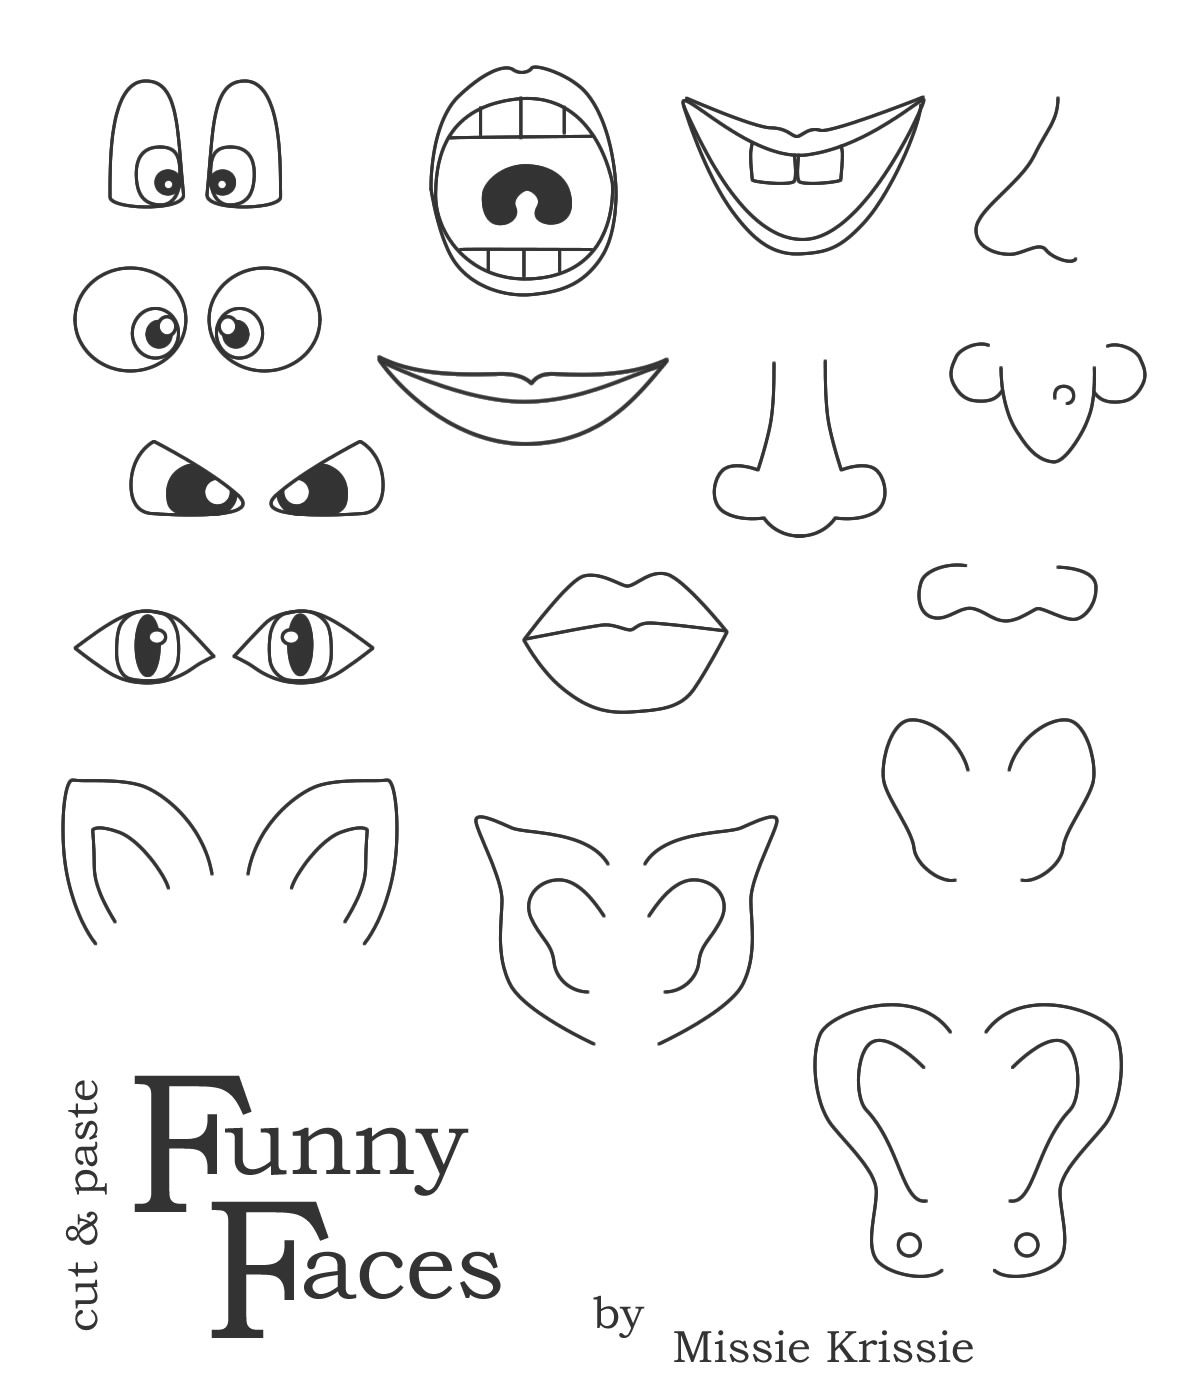 printable funny face images wait for it to load right click and save print at your. Black Bedroom Furniture Sets. Home Design Ideas